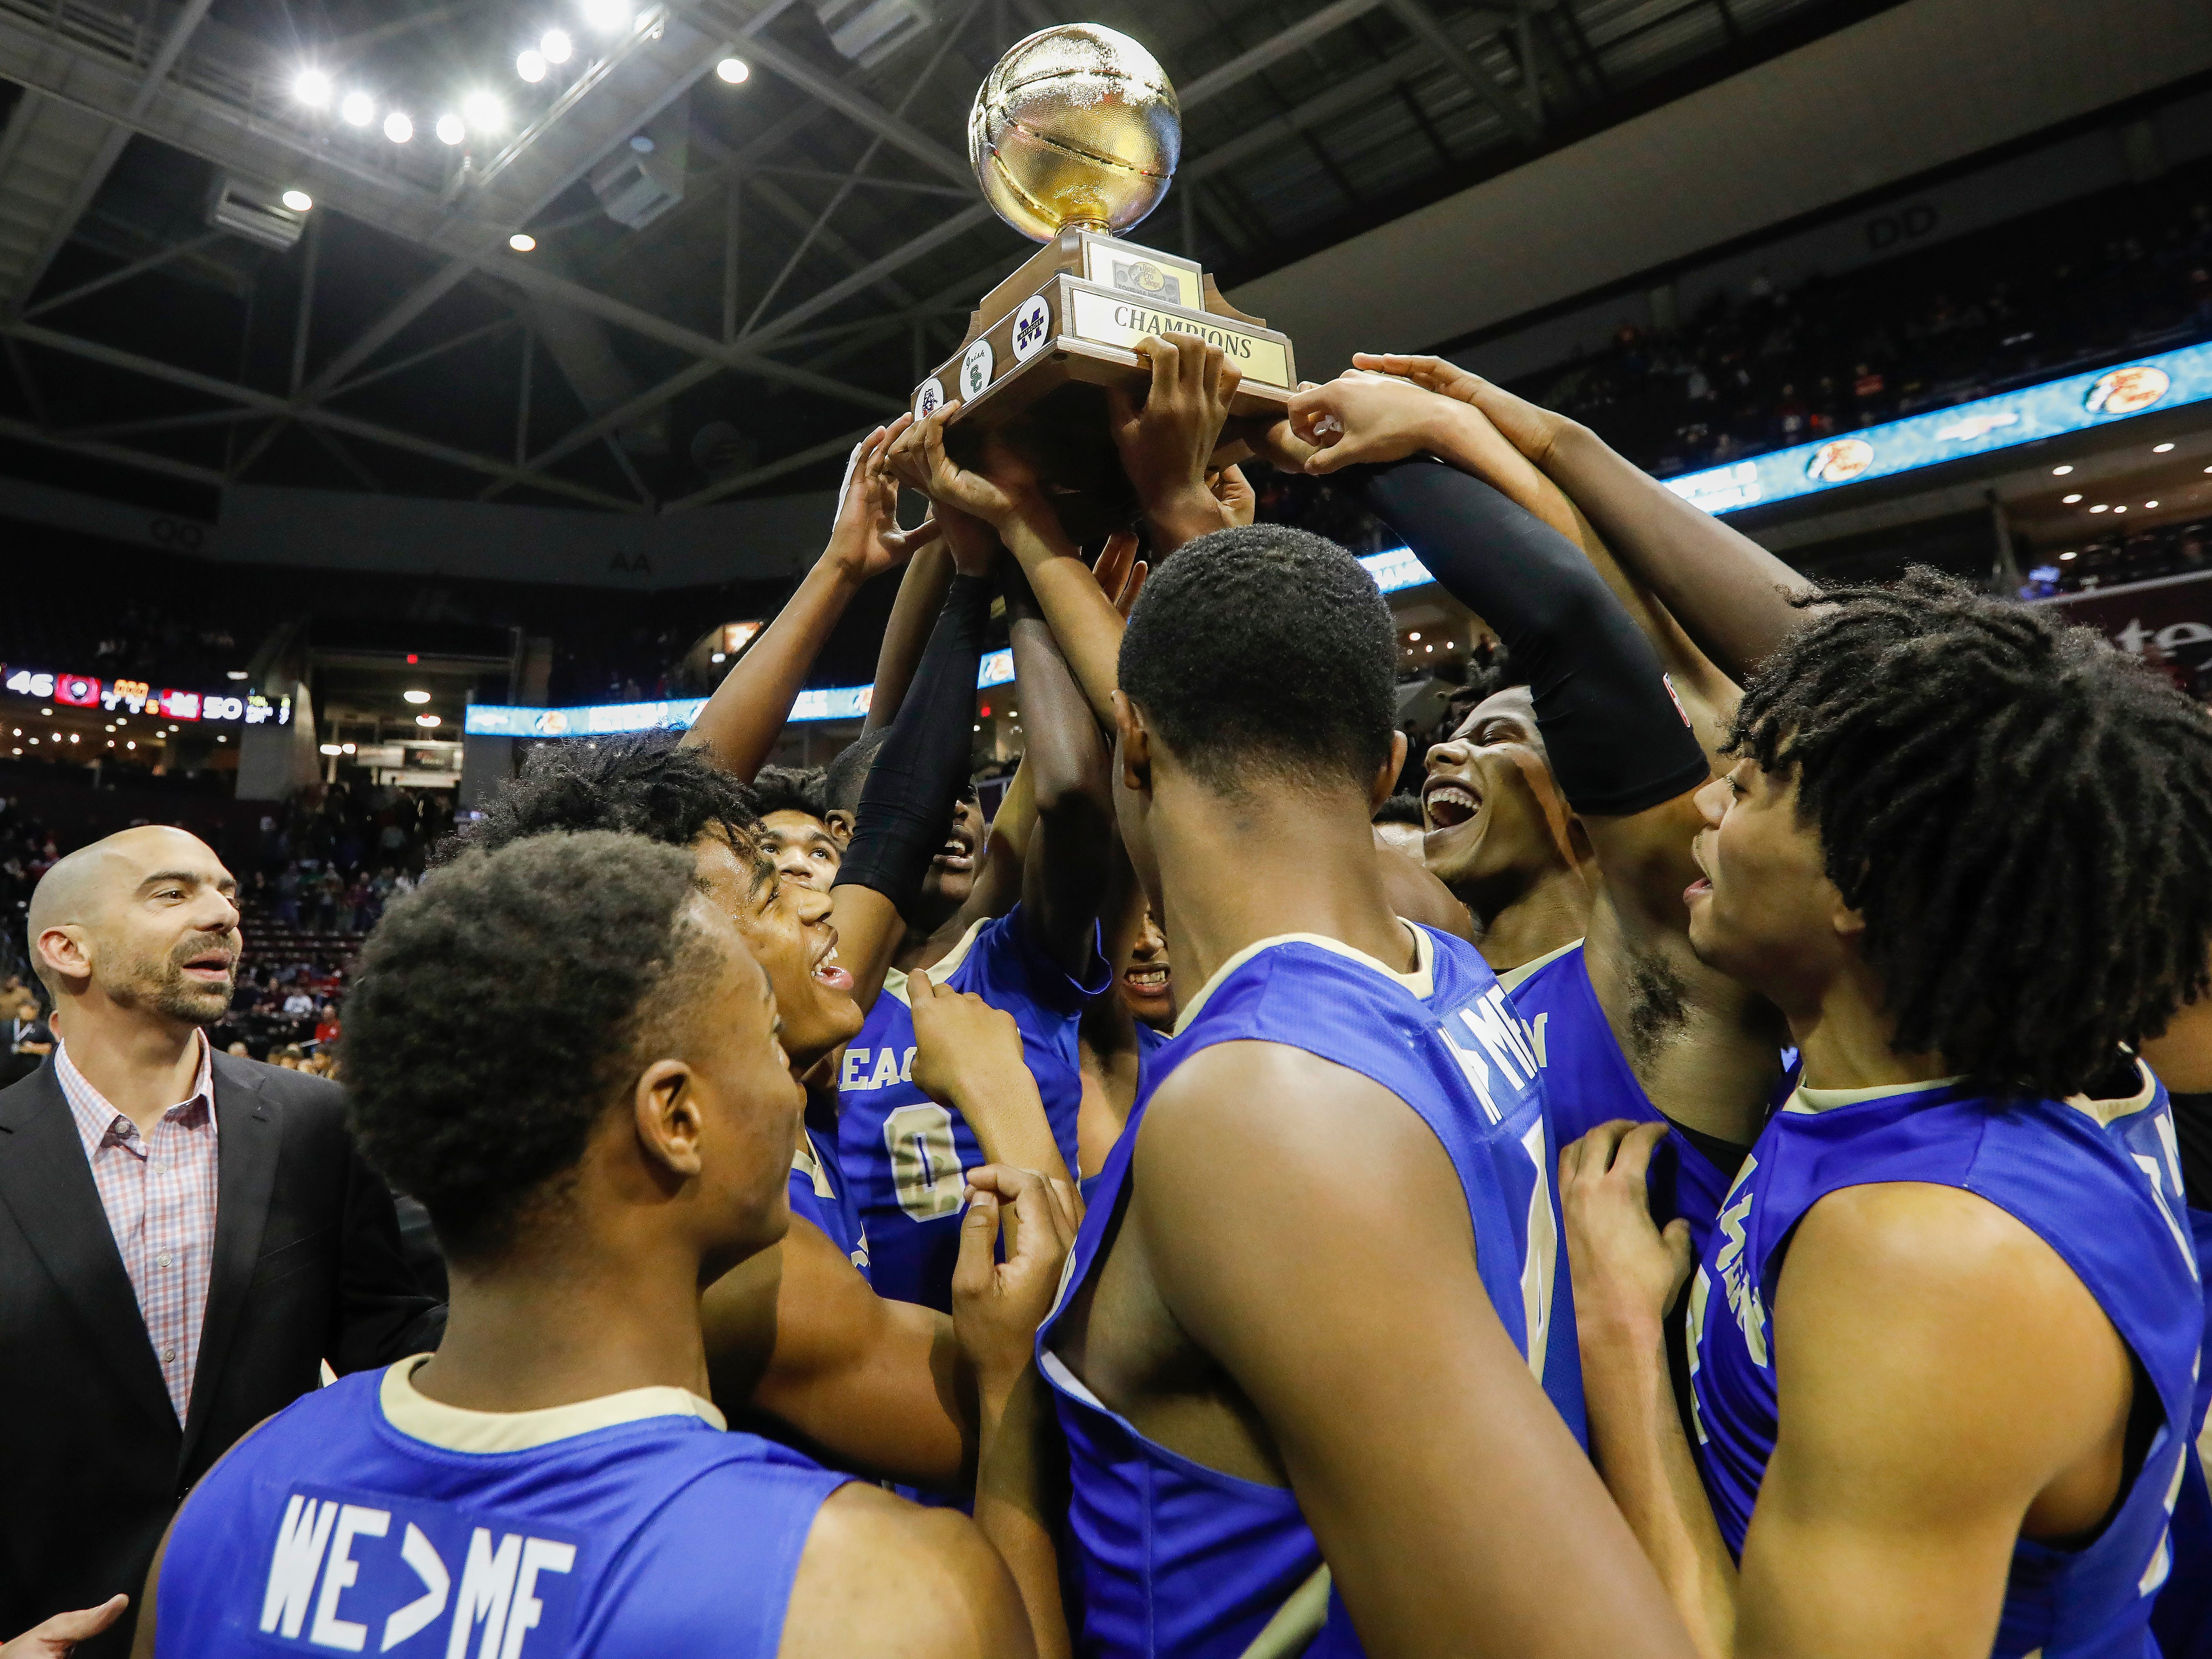 McEachern celebrates their 50-46 win over Sunrise Christian Academy in the championship game of the Bass Pro Shops Tournament of Champions at JQH Arena on Saturday, Jan. 19, 2019.